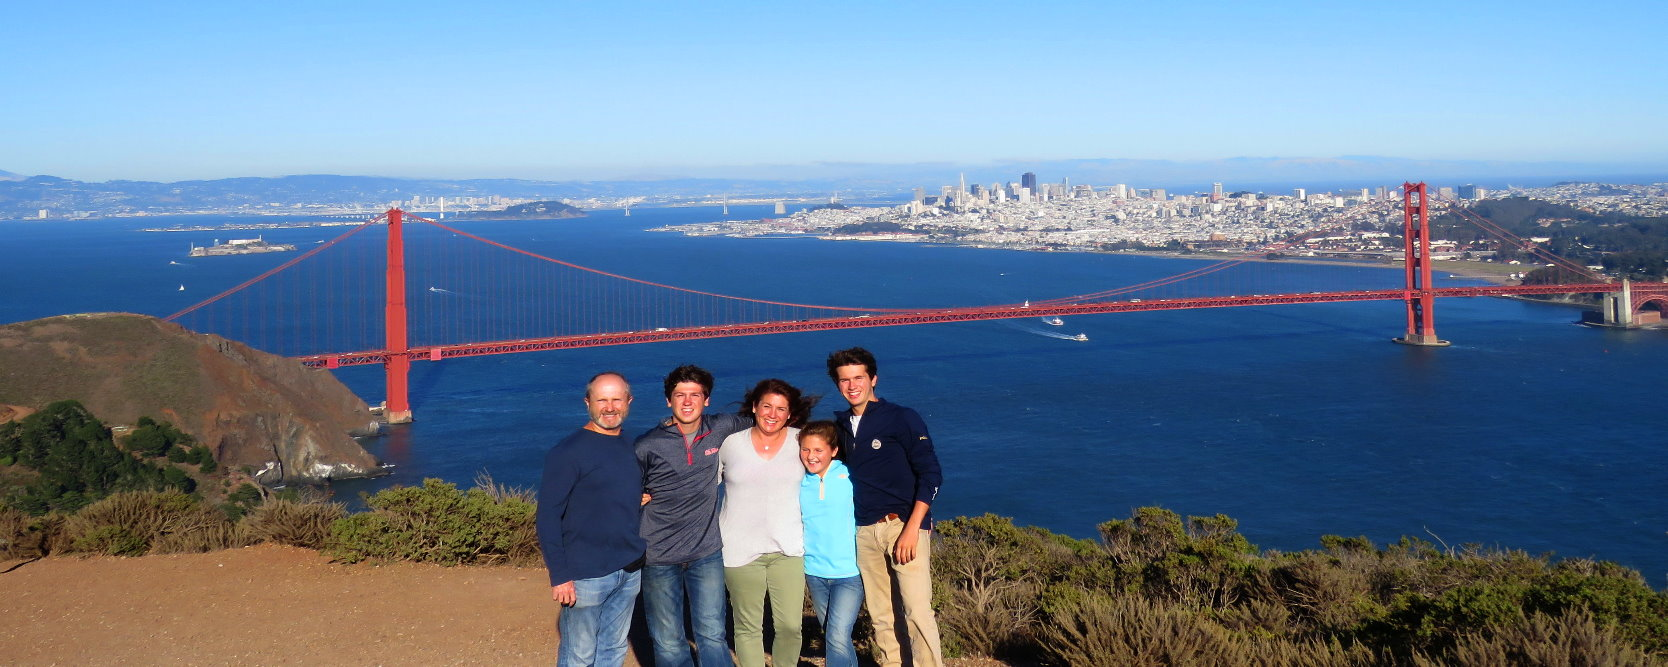 best_travel_deals_on_san_francisco_tour_packages_for_families